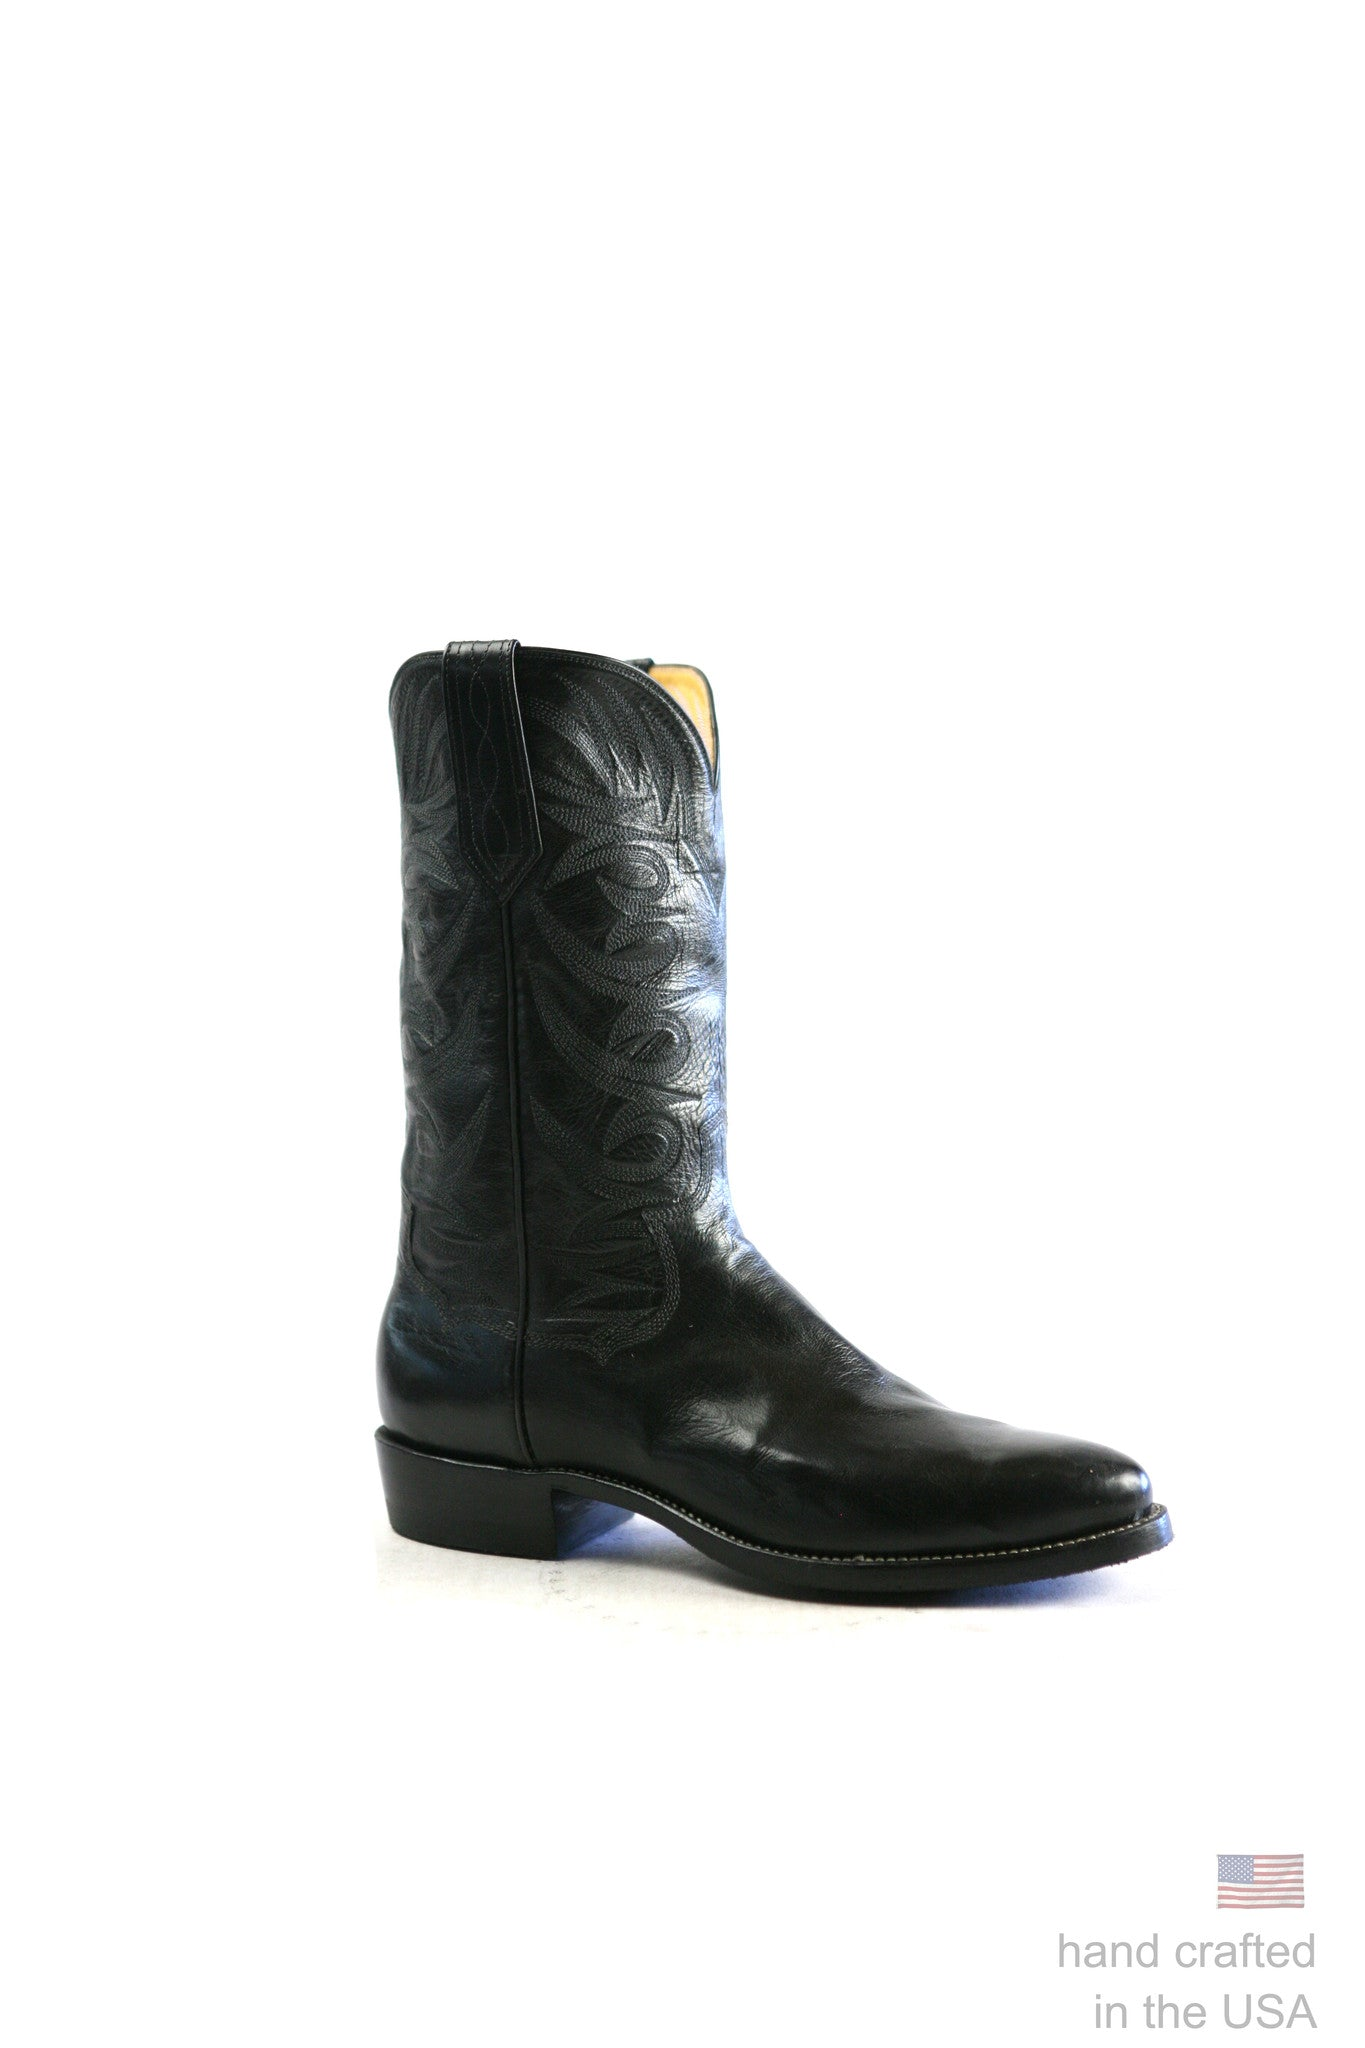 Singles: Boot 0203: Size 7B